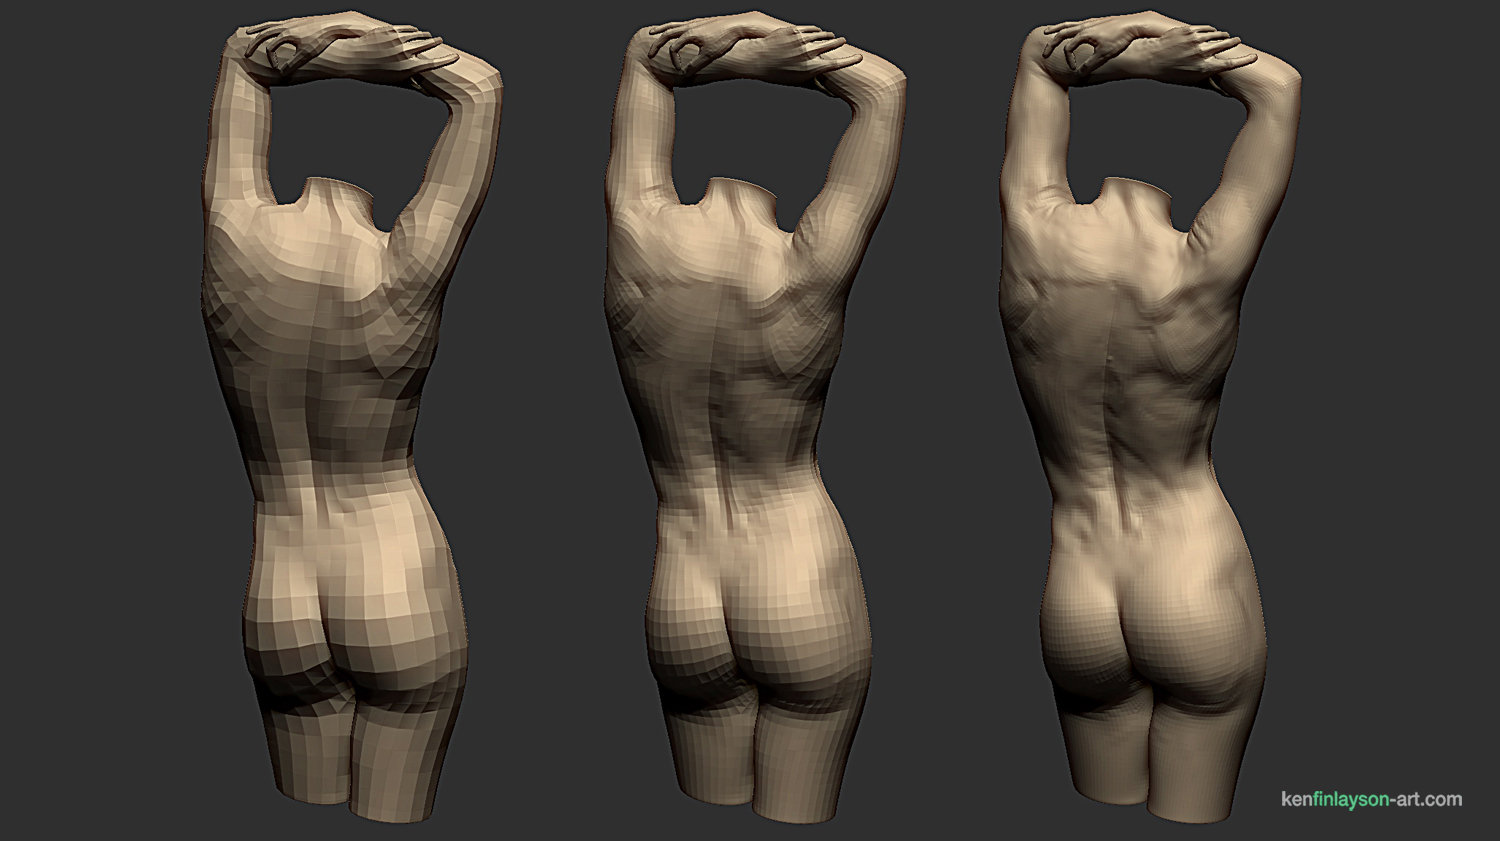 ArtStation - Female Anatomy Study Part 2, Ken Finlayson